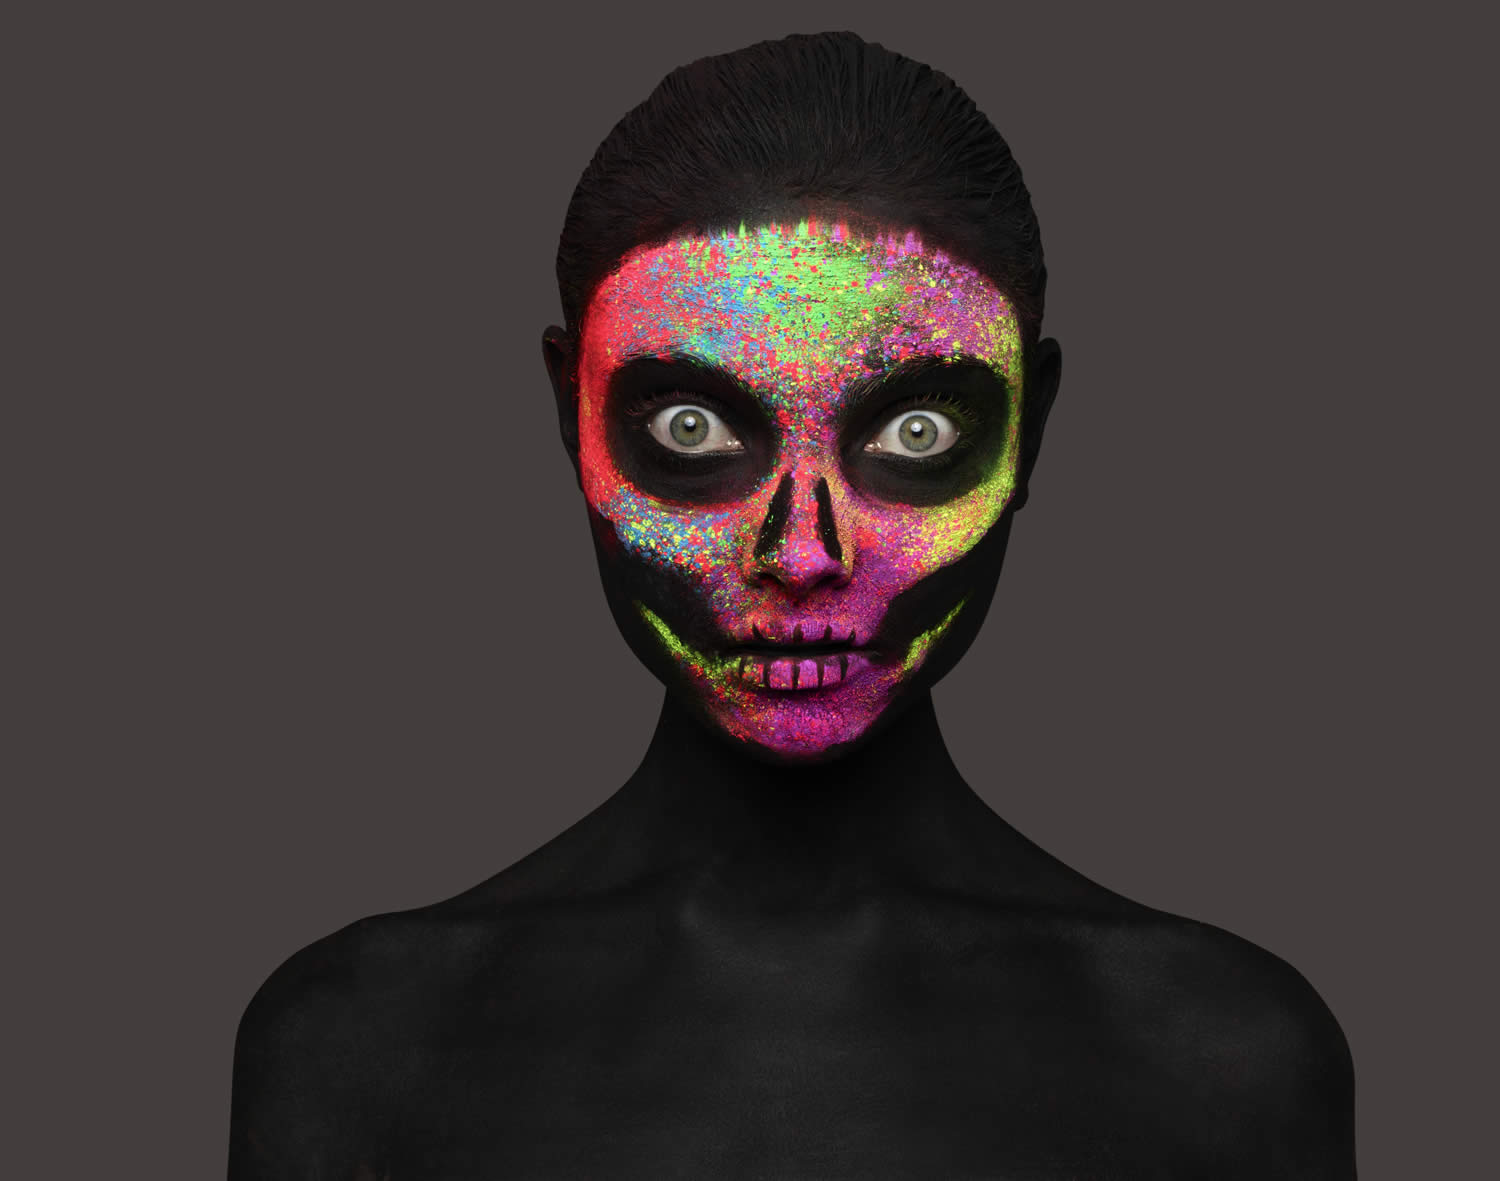 neon skull art, photo by rankin